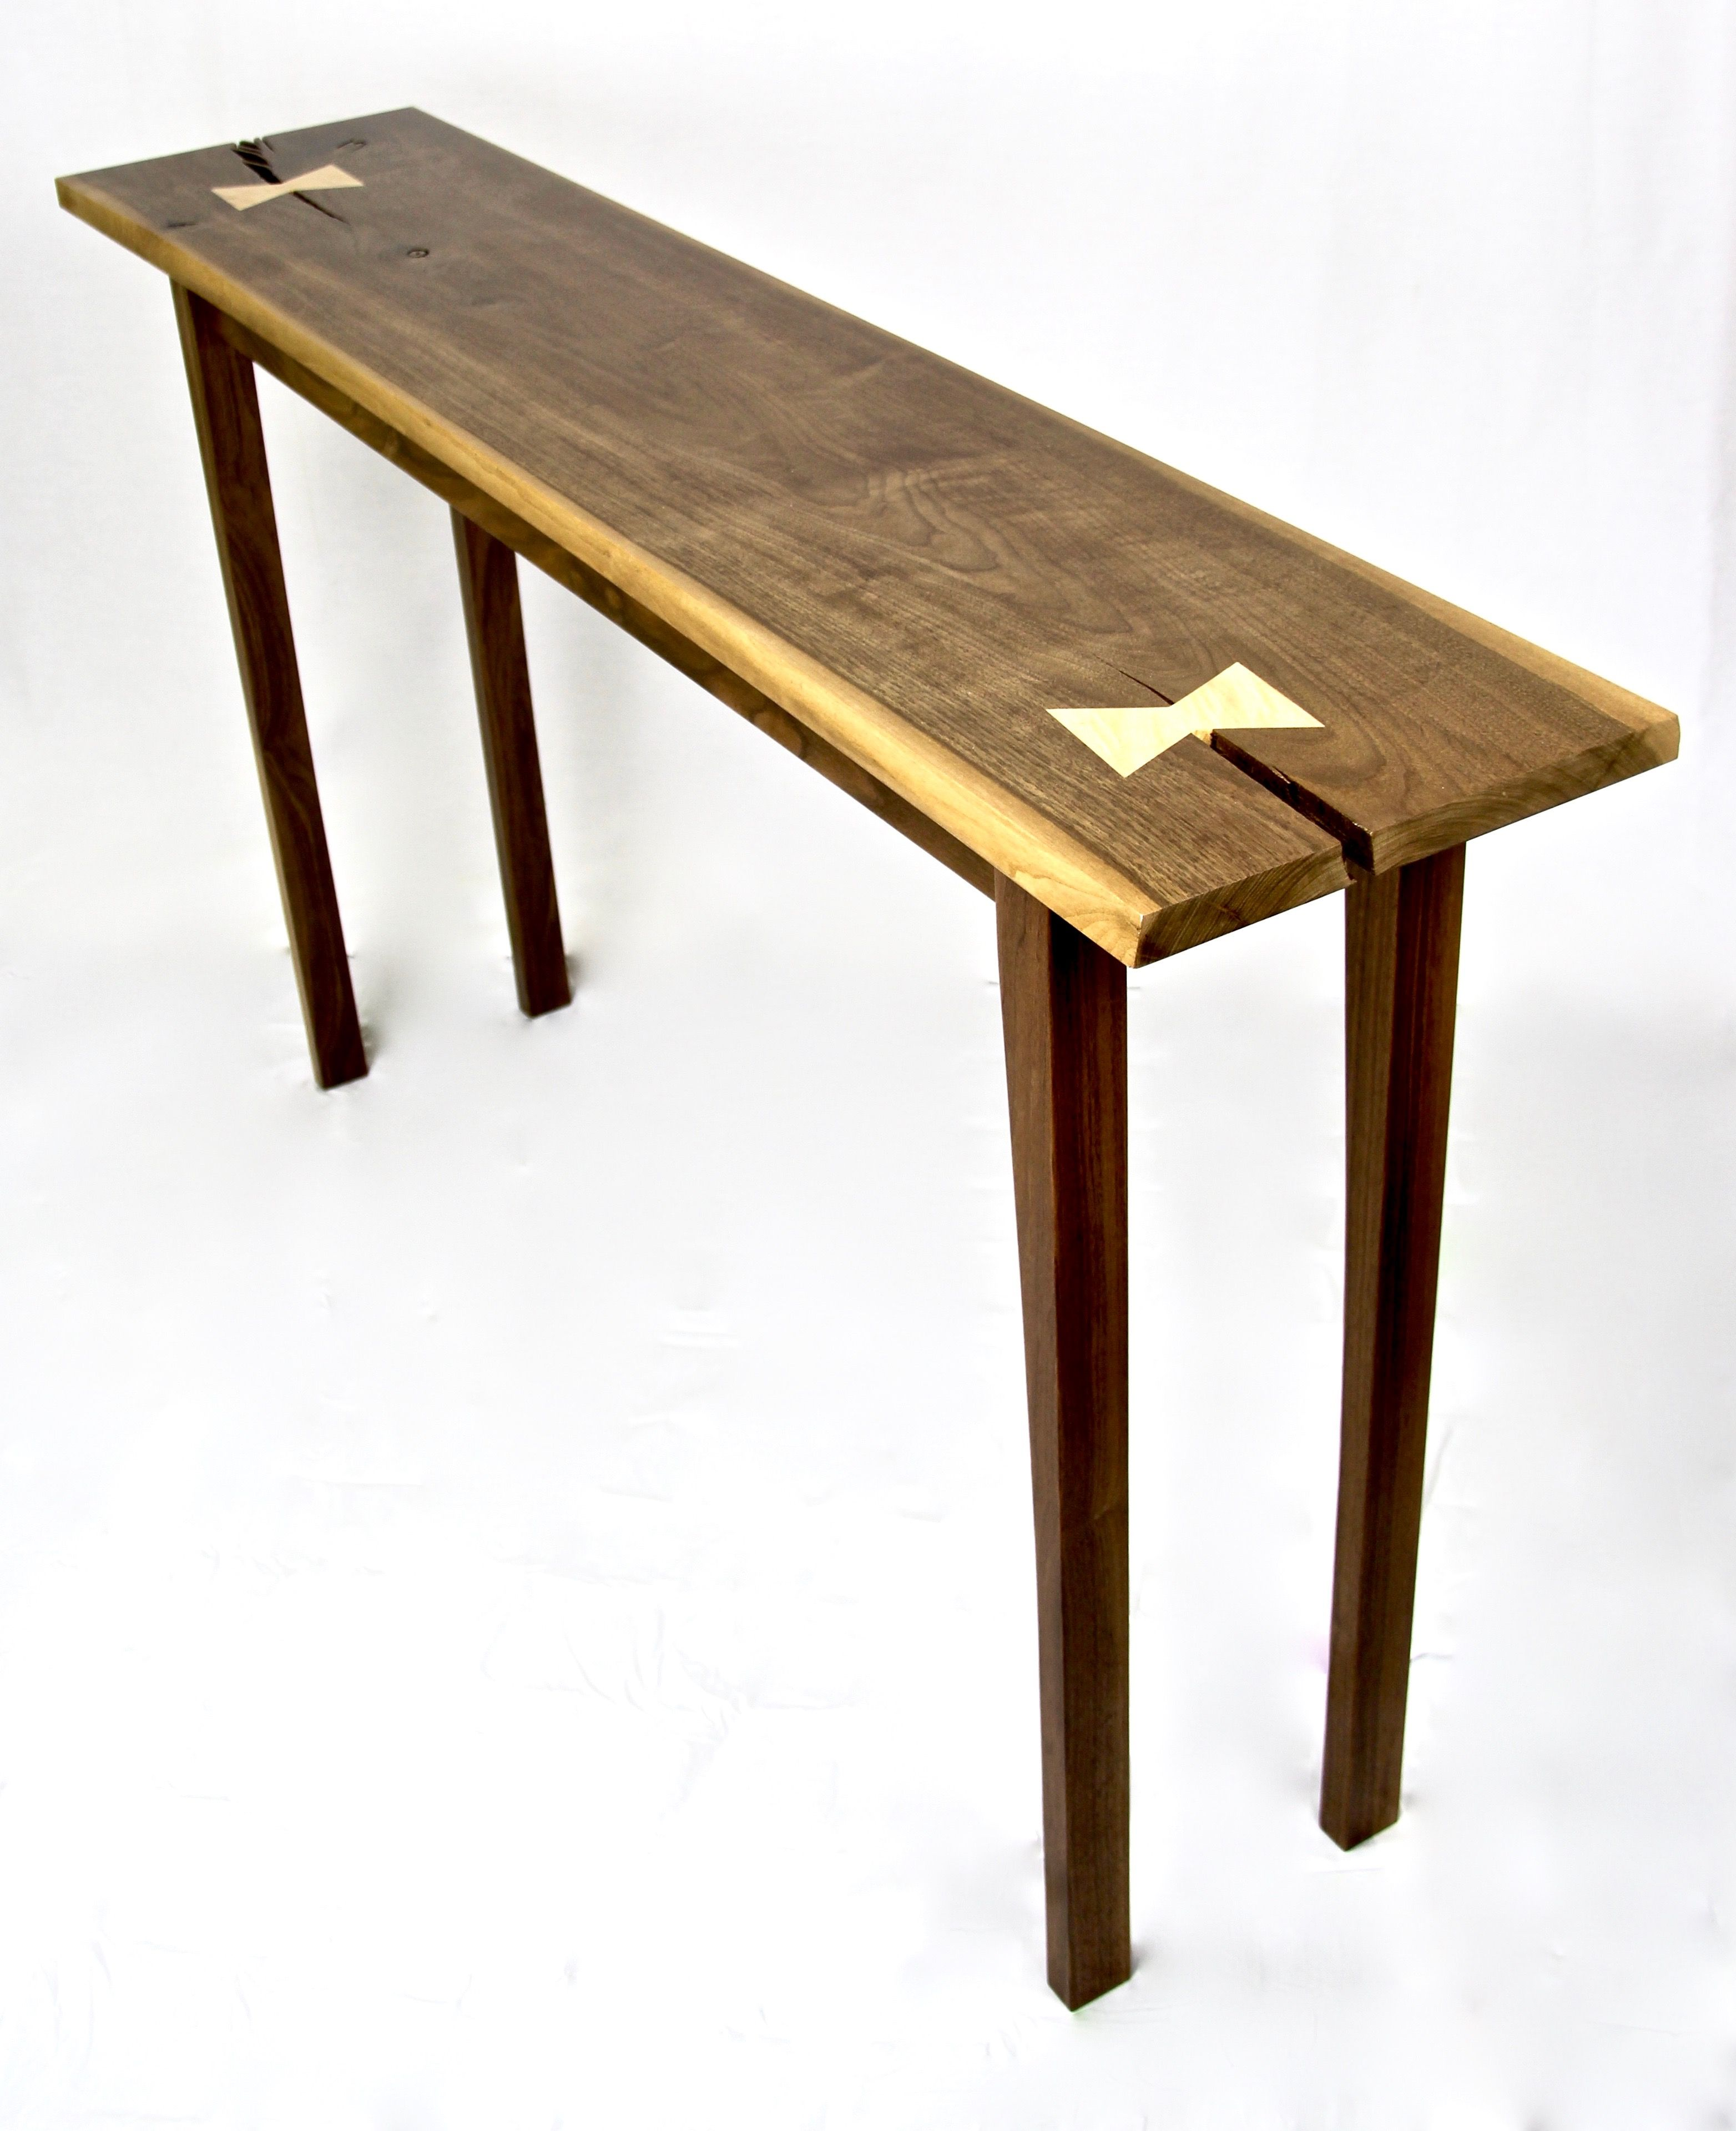 Handmade live edge walnut console table with tiger maple butterfly custom made live edge walnut console table with tiger maple butterfly tenons geotapseo Image collections